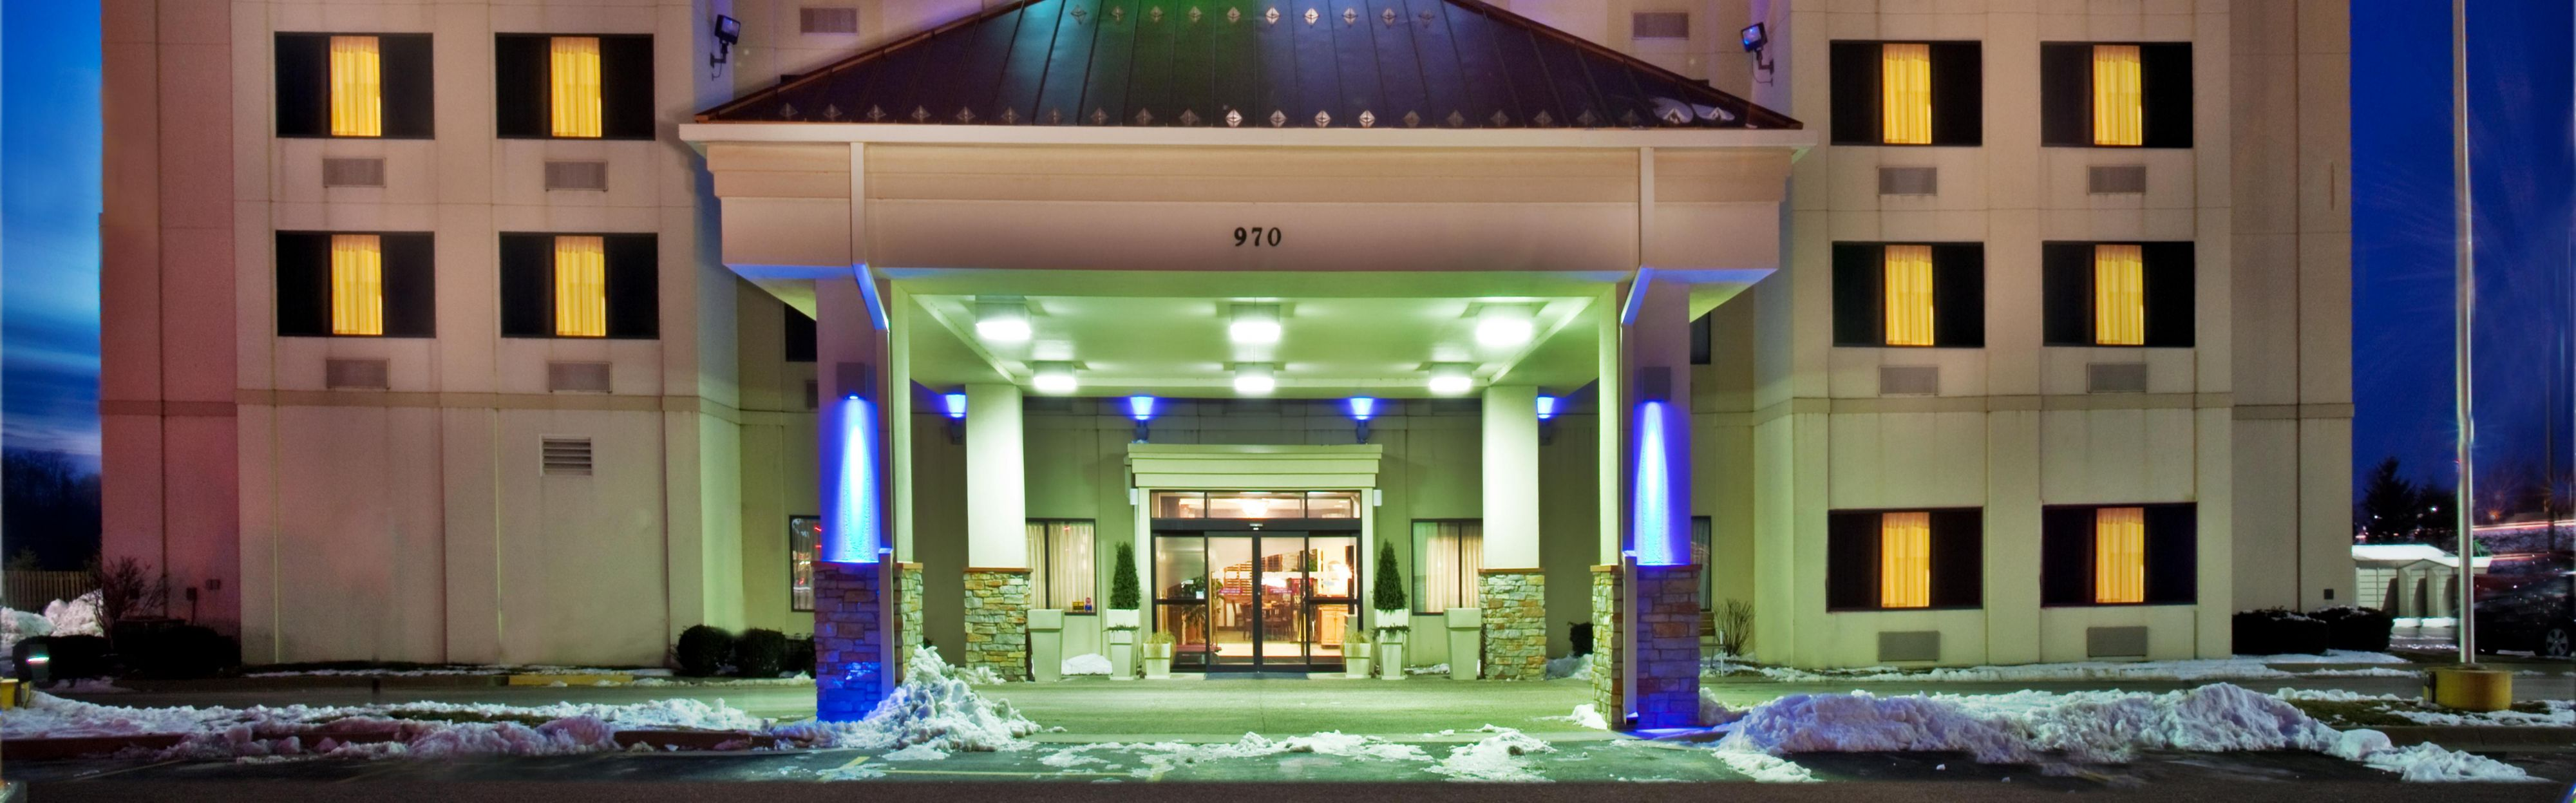 Holiday Inn Express Coralville image 0